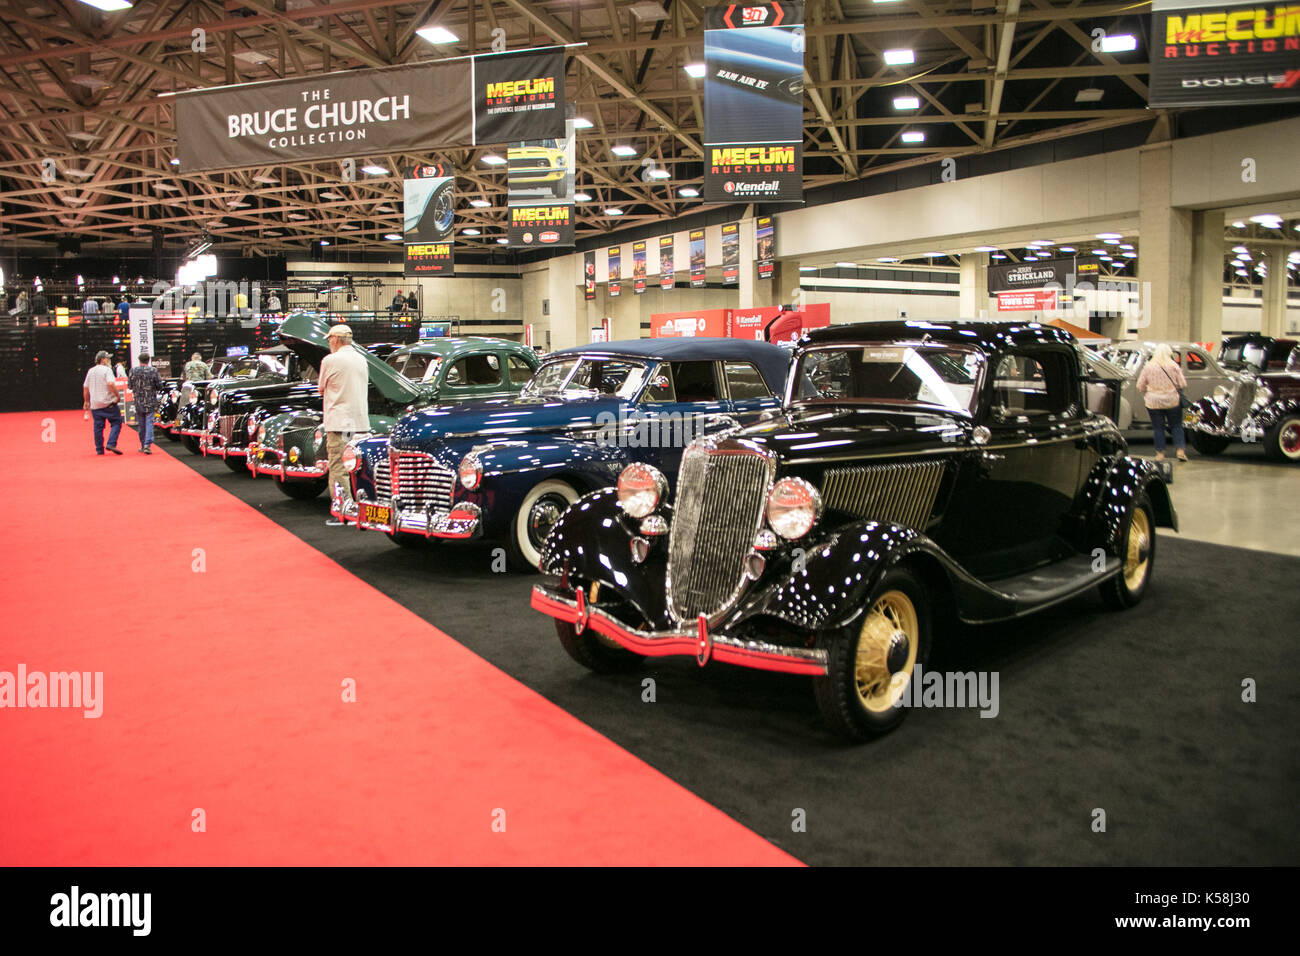 Car Auctions Stock Photos & Car Auctions Stock Images - Alamy